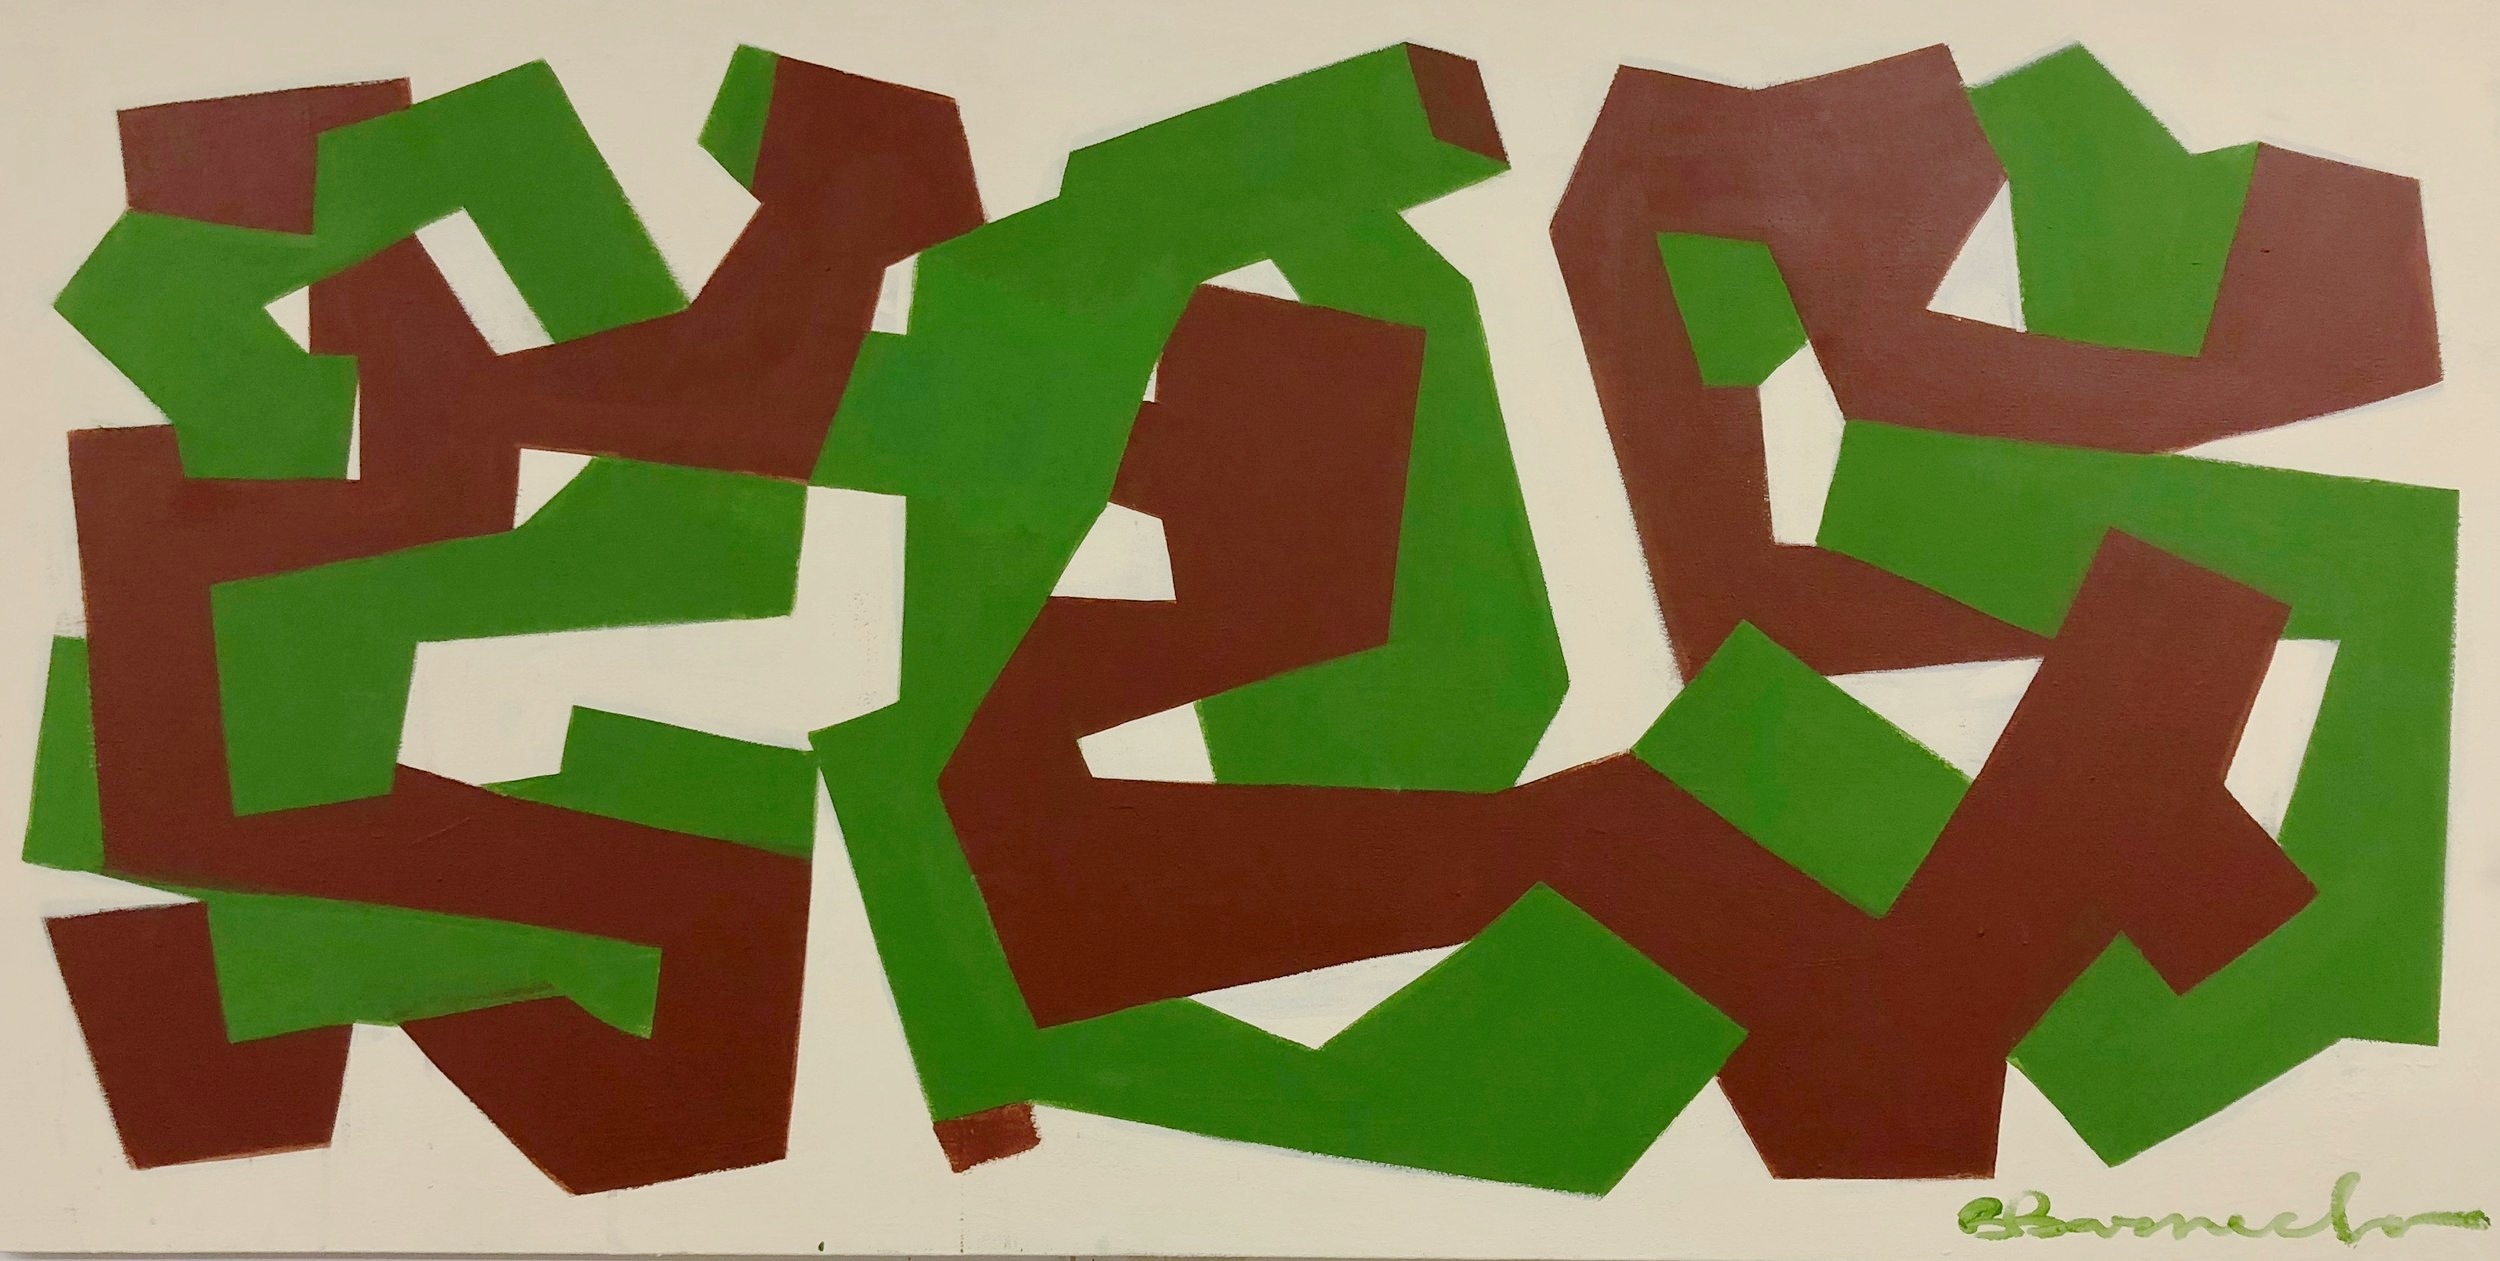 Energy (green) - Latex on Canvas - 5' x 3' - $2500 - 2016